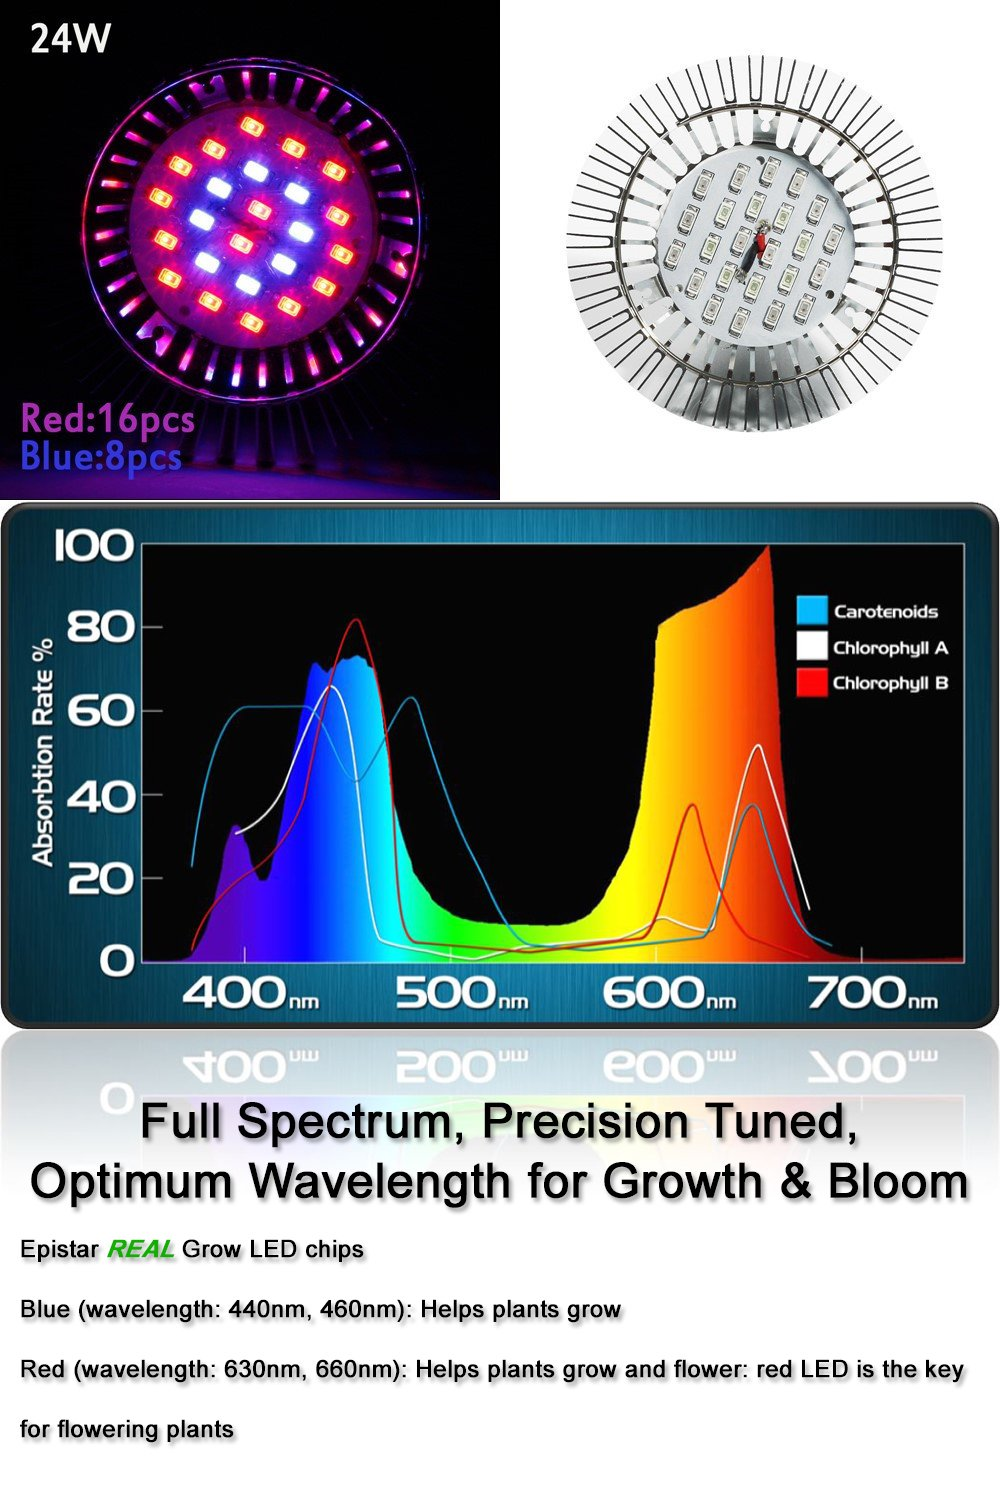 Newest 3rd Generation Growing LED Light Bulbs for Hydroponic Aquaponic ZOTRON LED Grow Light 24W Indoor Plants Greenhouse Herbs and Bonsai Trees